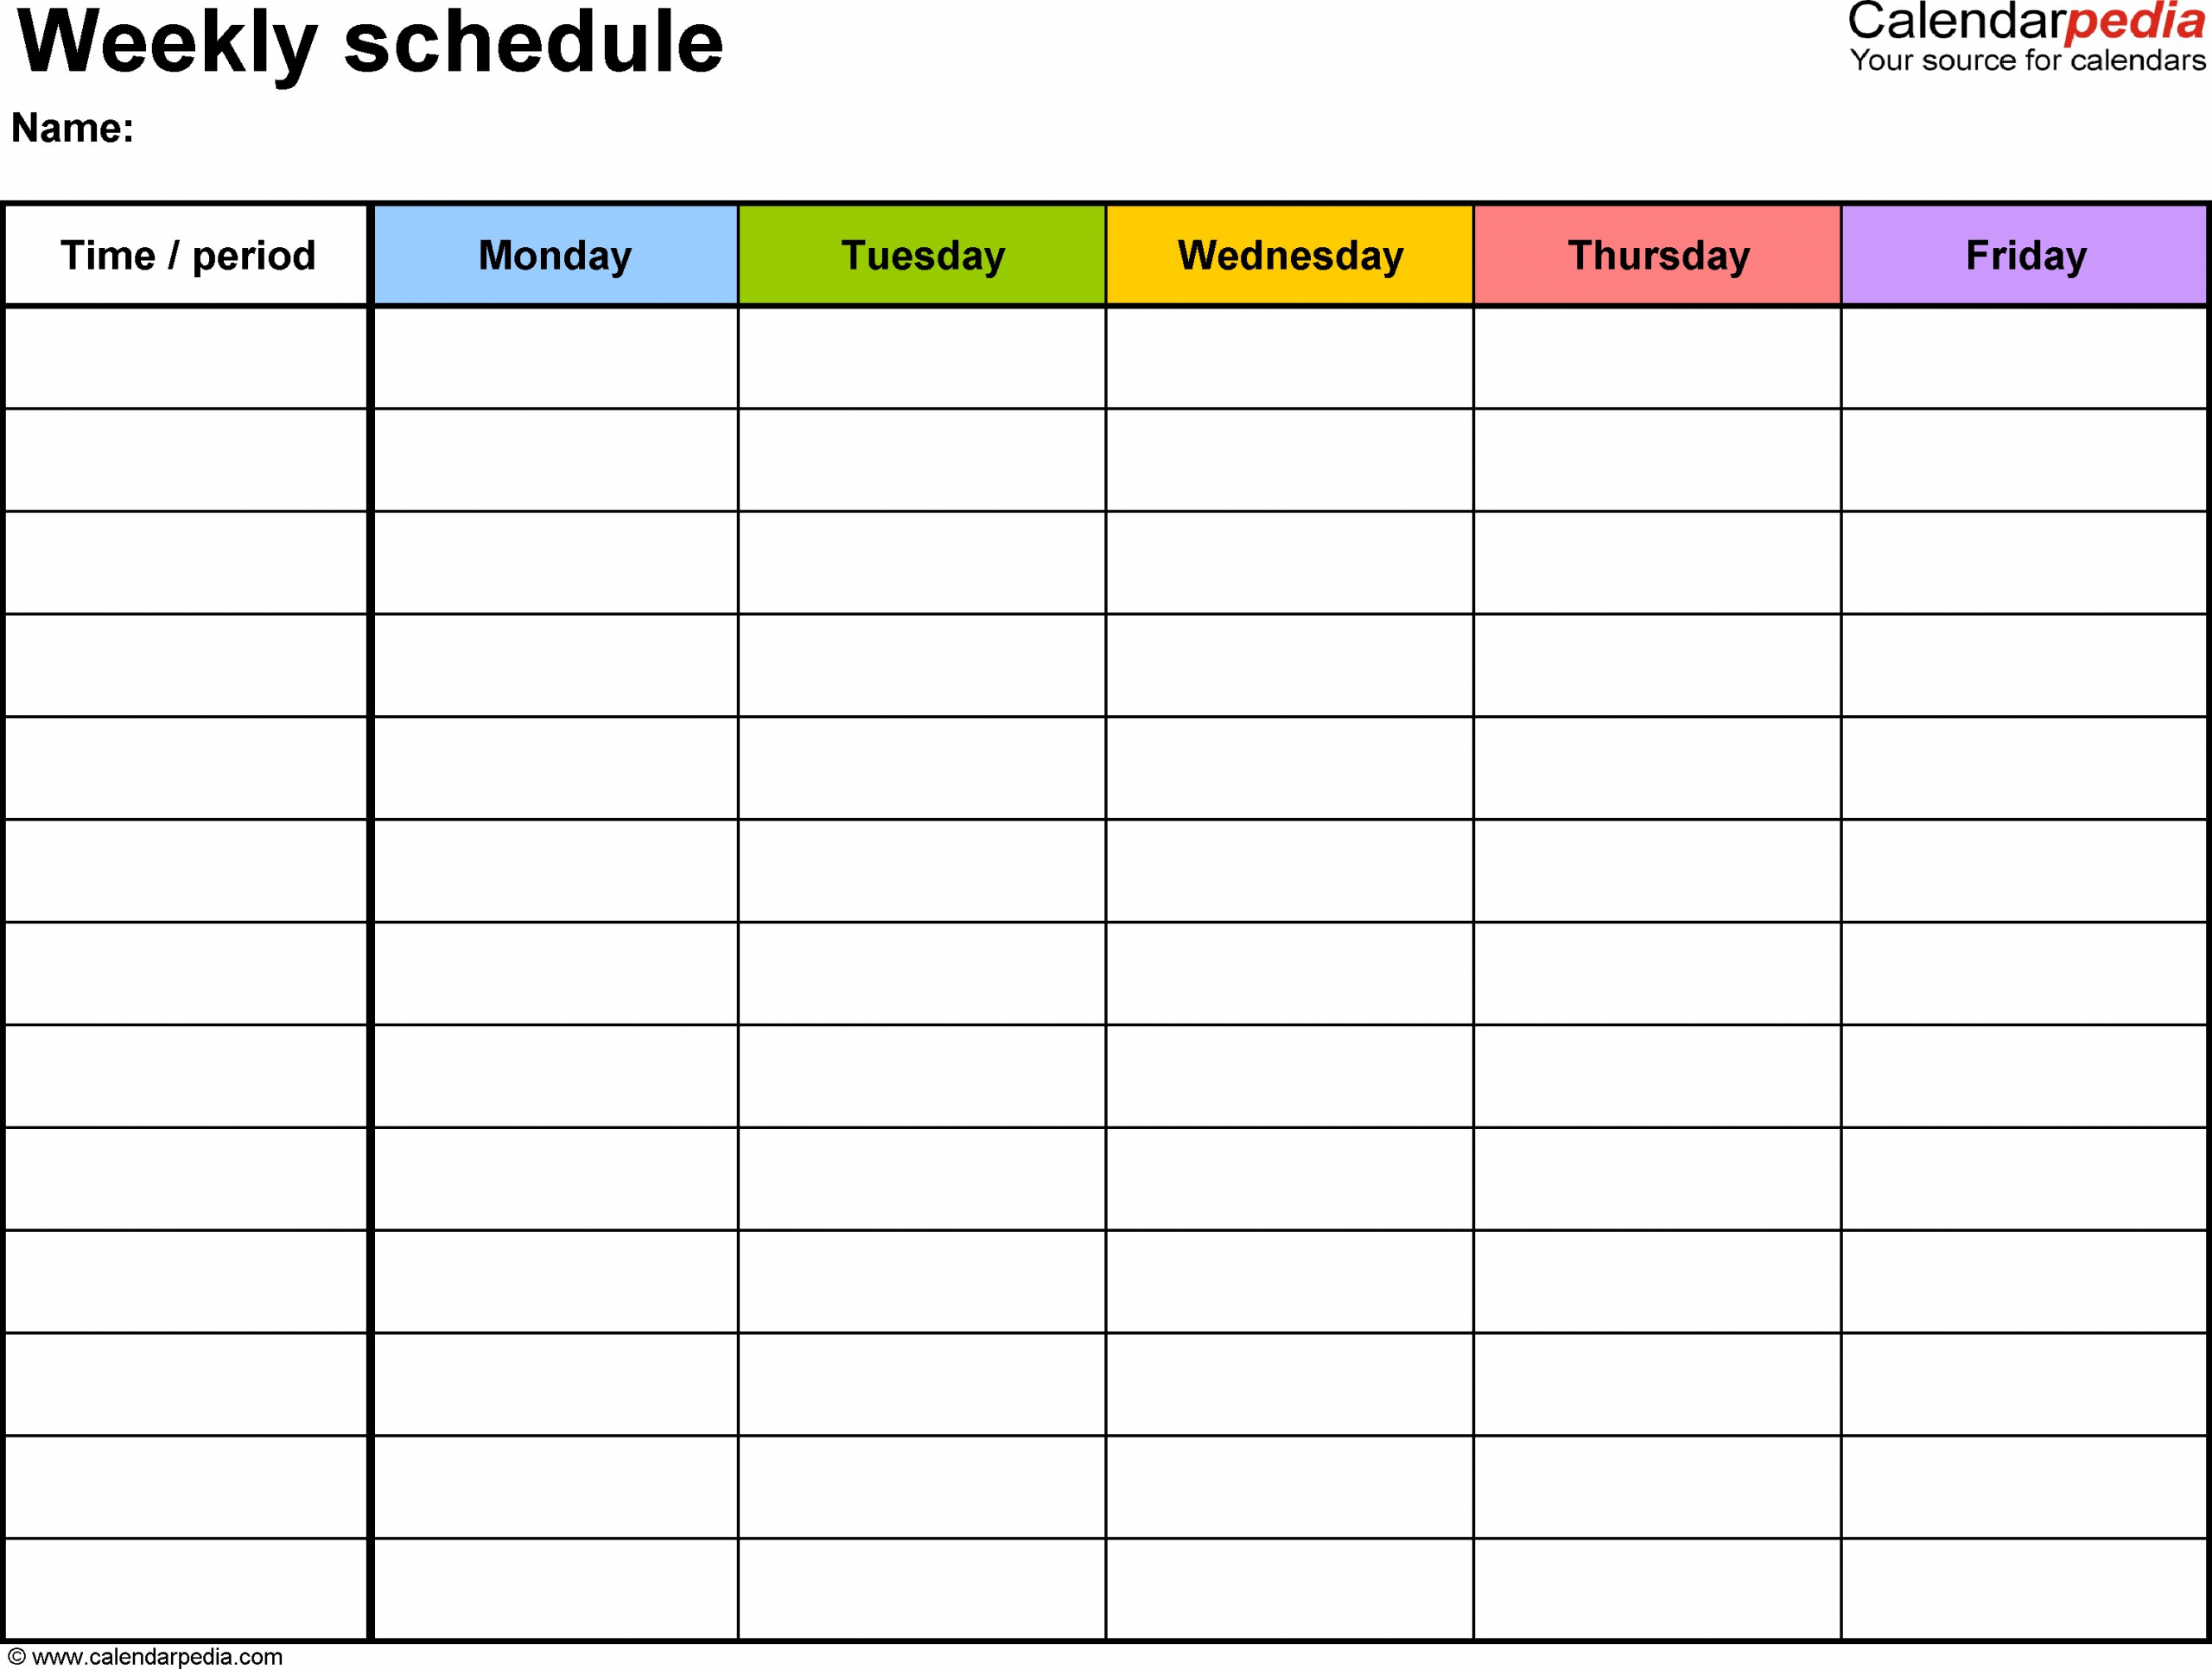 Blank Weekly Schedule With Time Slots | Calendar Template Monthly March Schedule With Time Slots